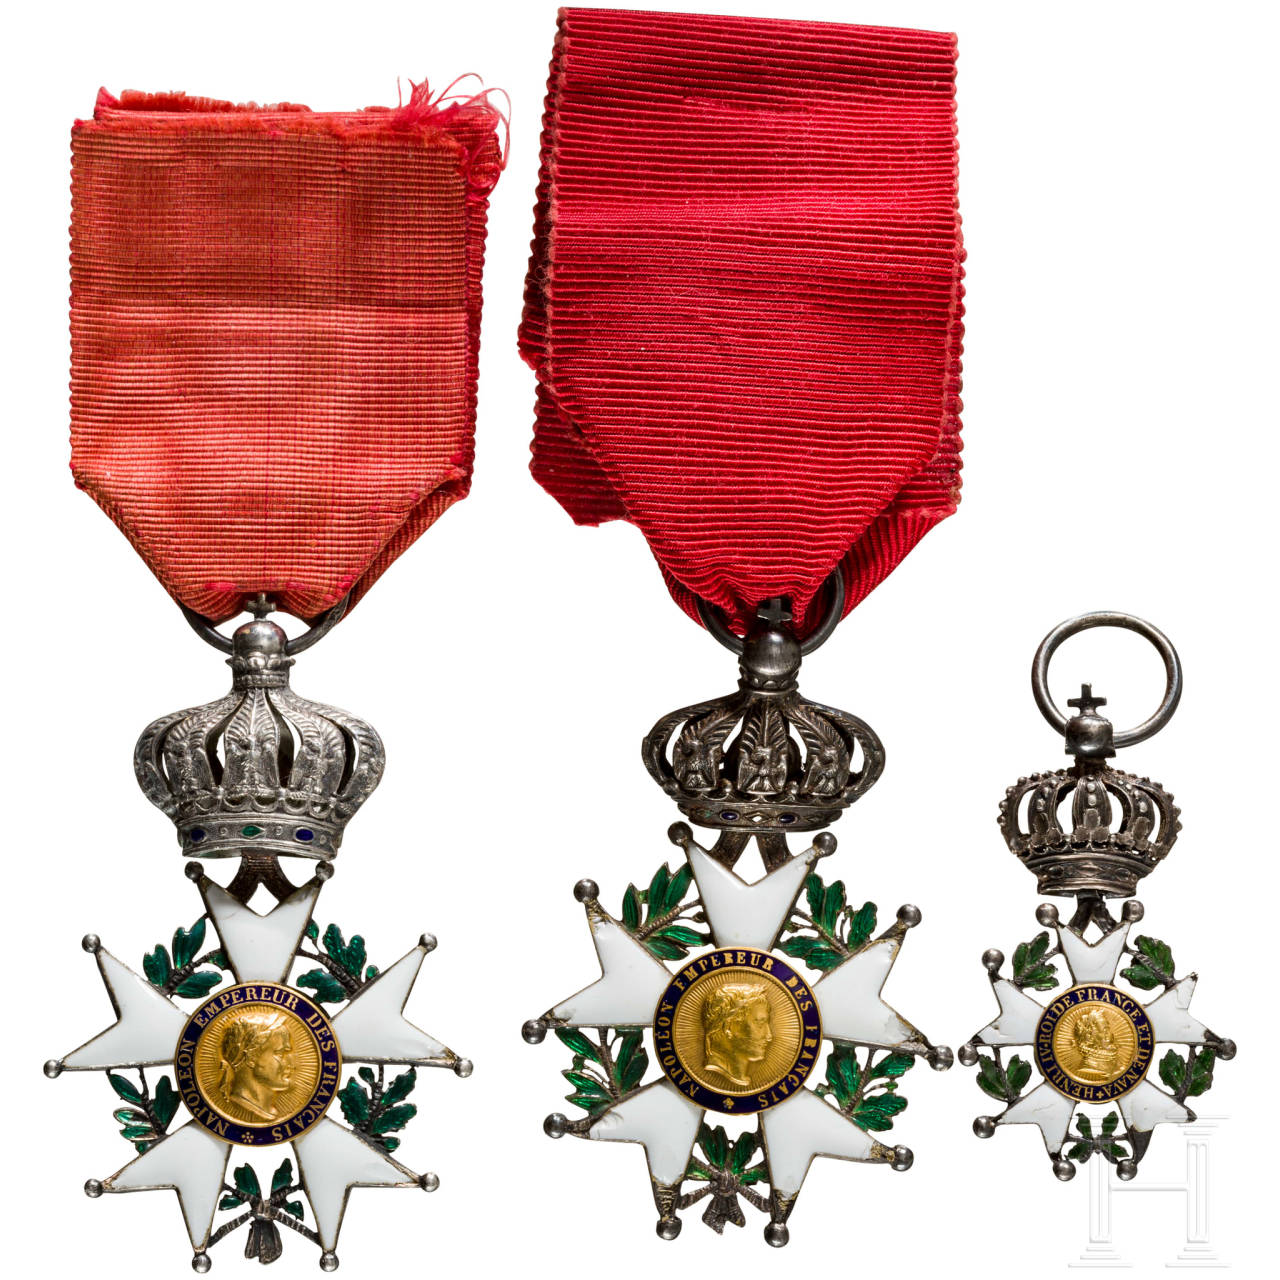 Three Orders of the Legion of Honour, 19th century